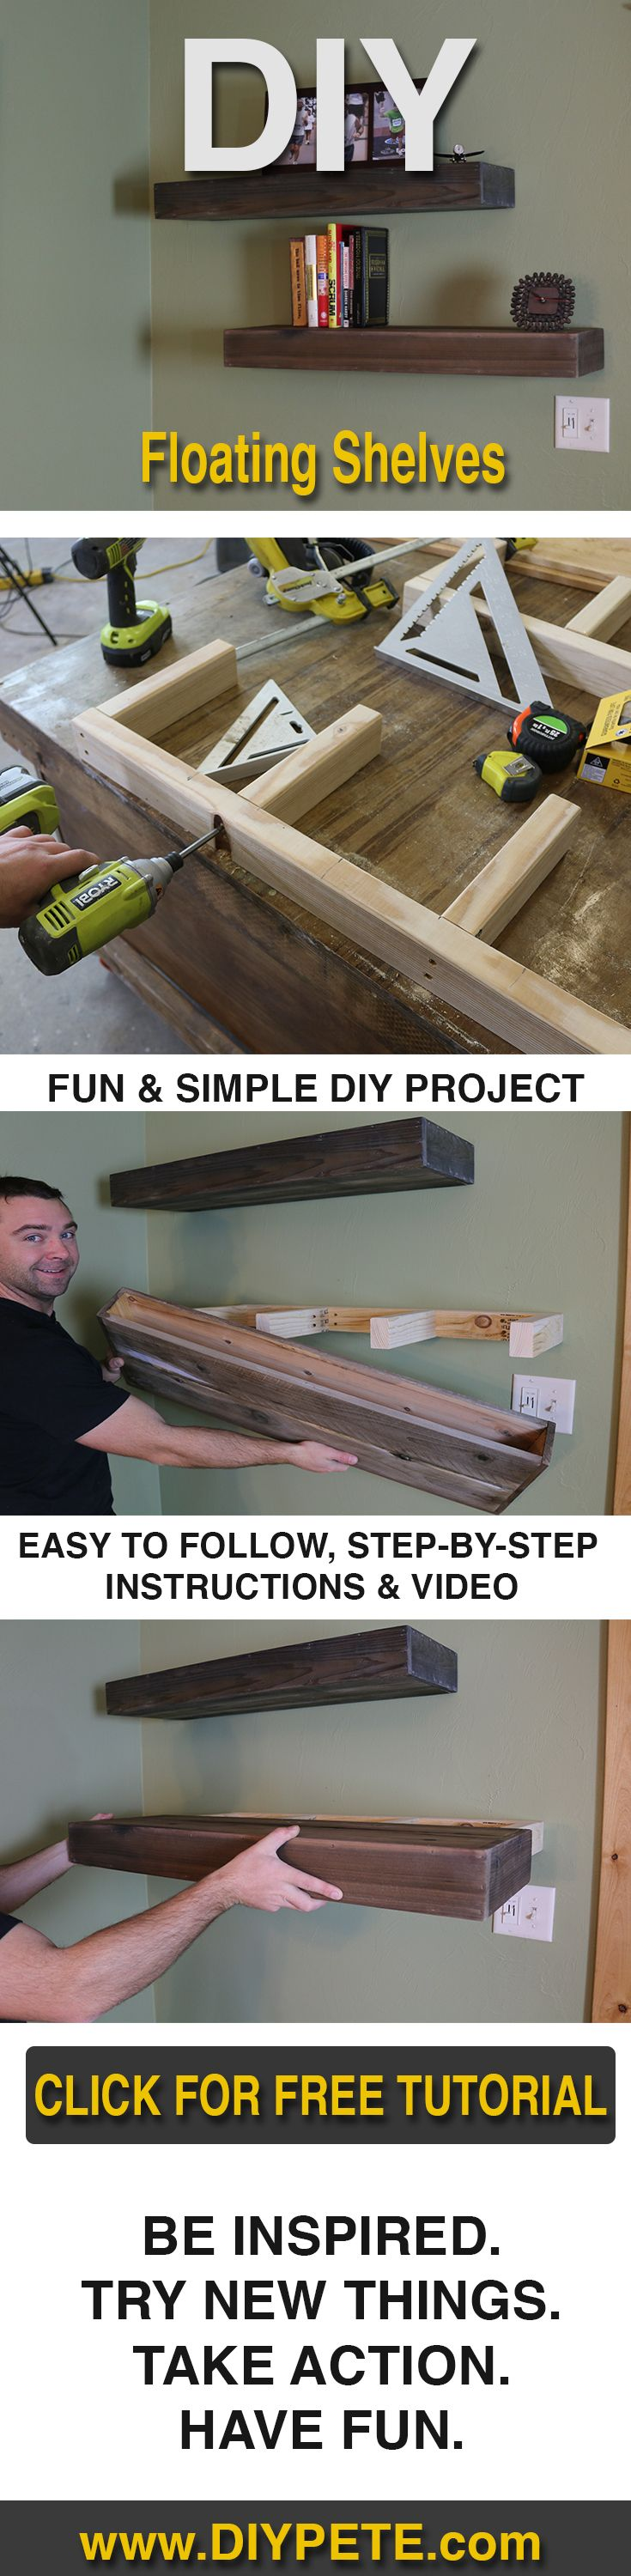 手机壳定制air force   olympic release date Learn how to make Wood Floating Shelves with DIY Pete Simple affordable project that looks great Check out the video post and free plans here http  DIYPete com FloatingShelves